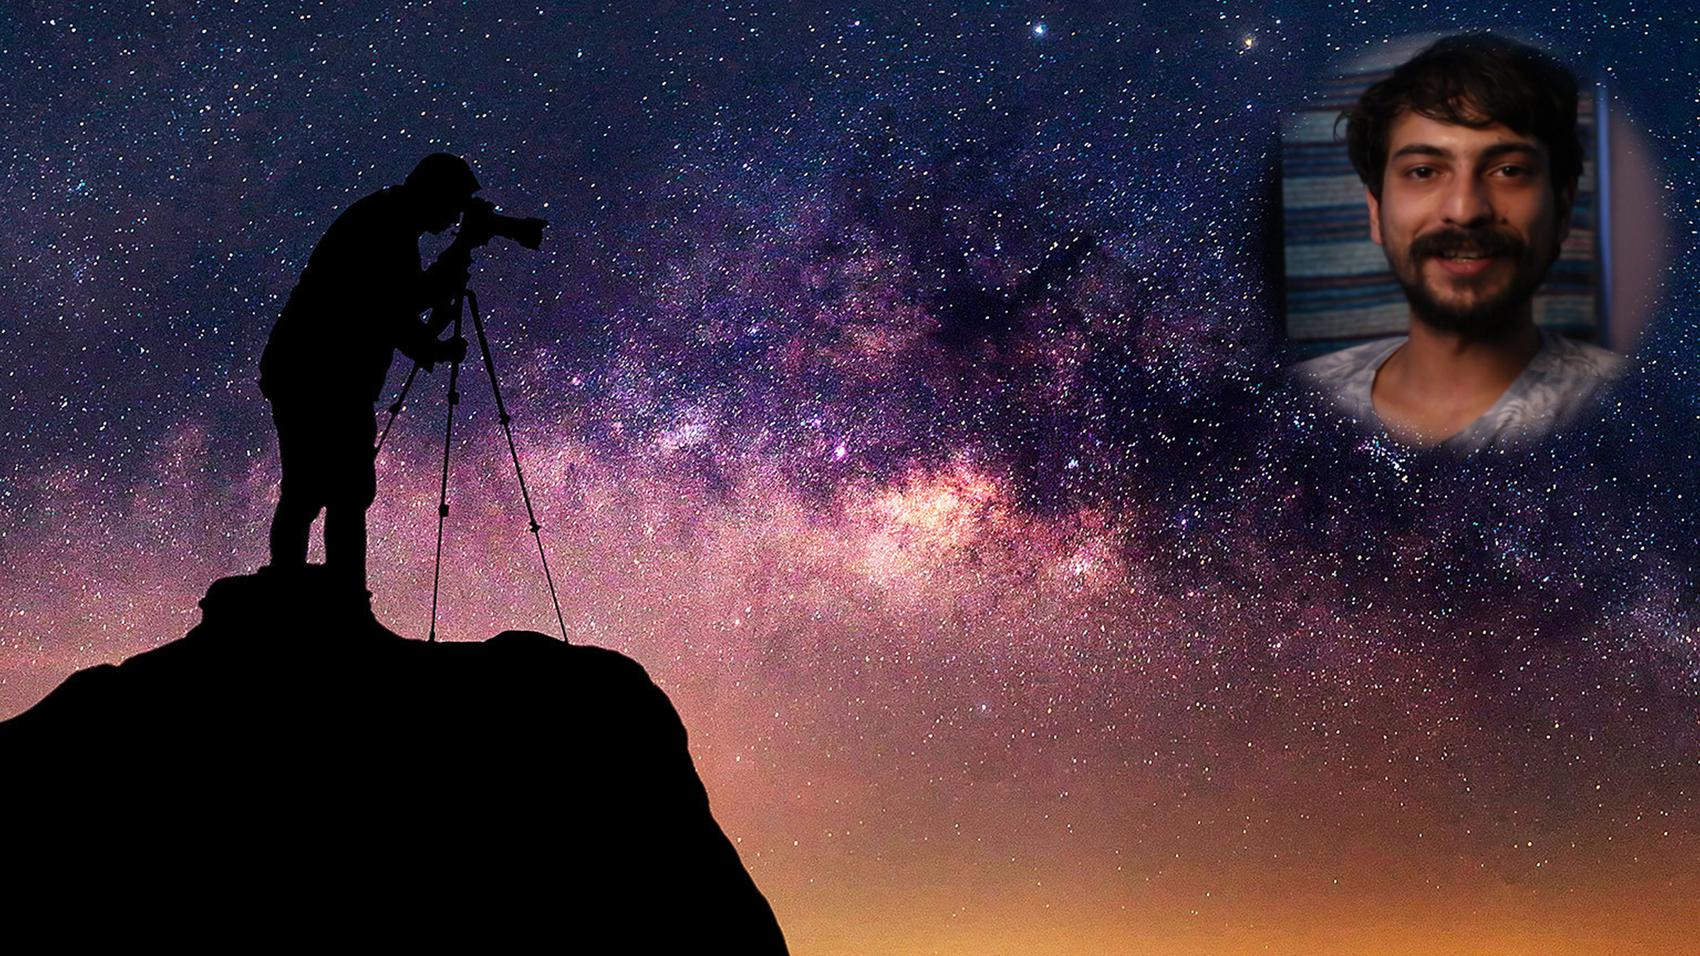 Career in Astrophotography